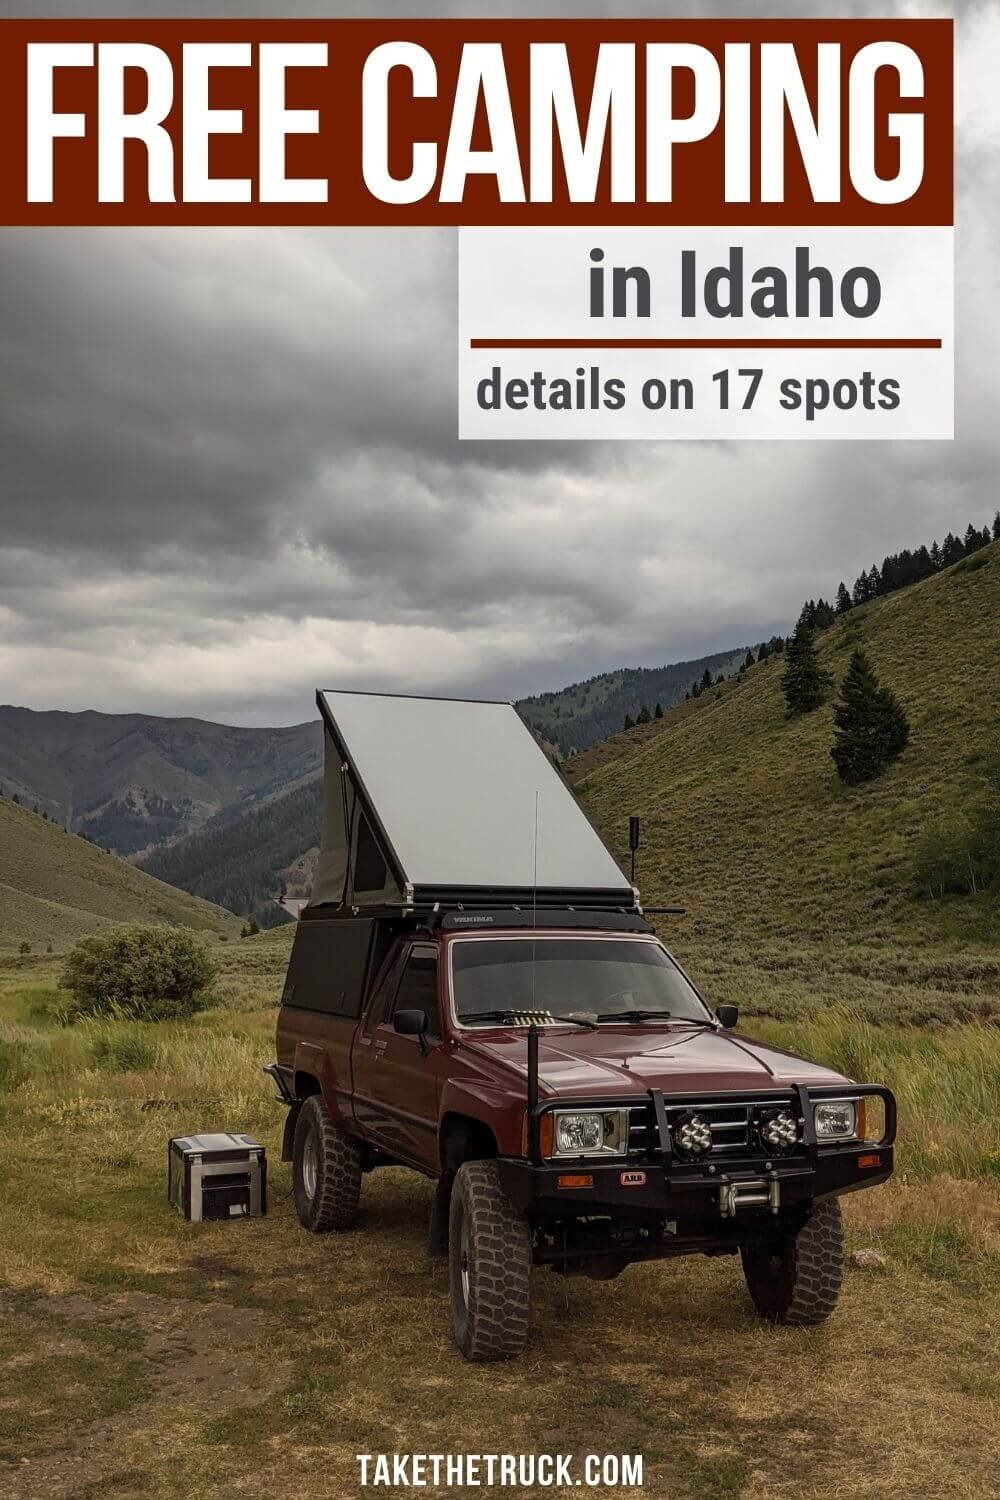 Looking for free camping in Idaho? This post gives all the details you'll need about 17 different boondocking spots - either blm camping or national forest camping in Idaho.